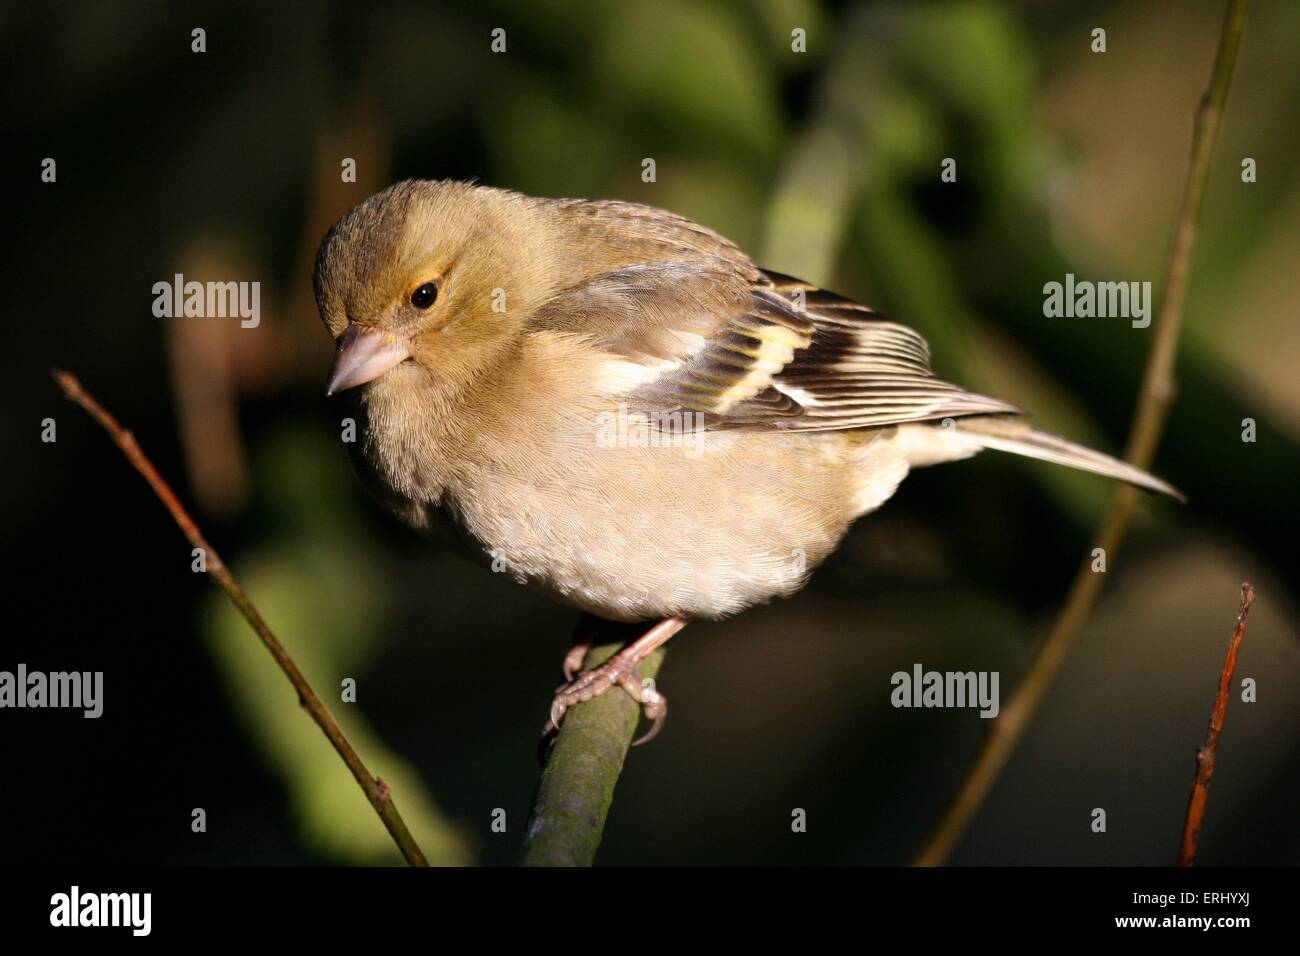 Chaffinch - Stock Image